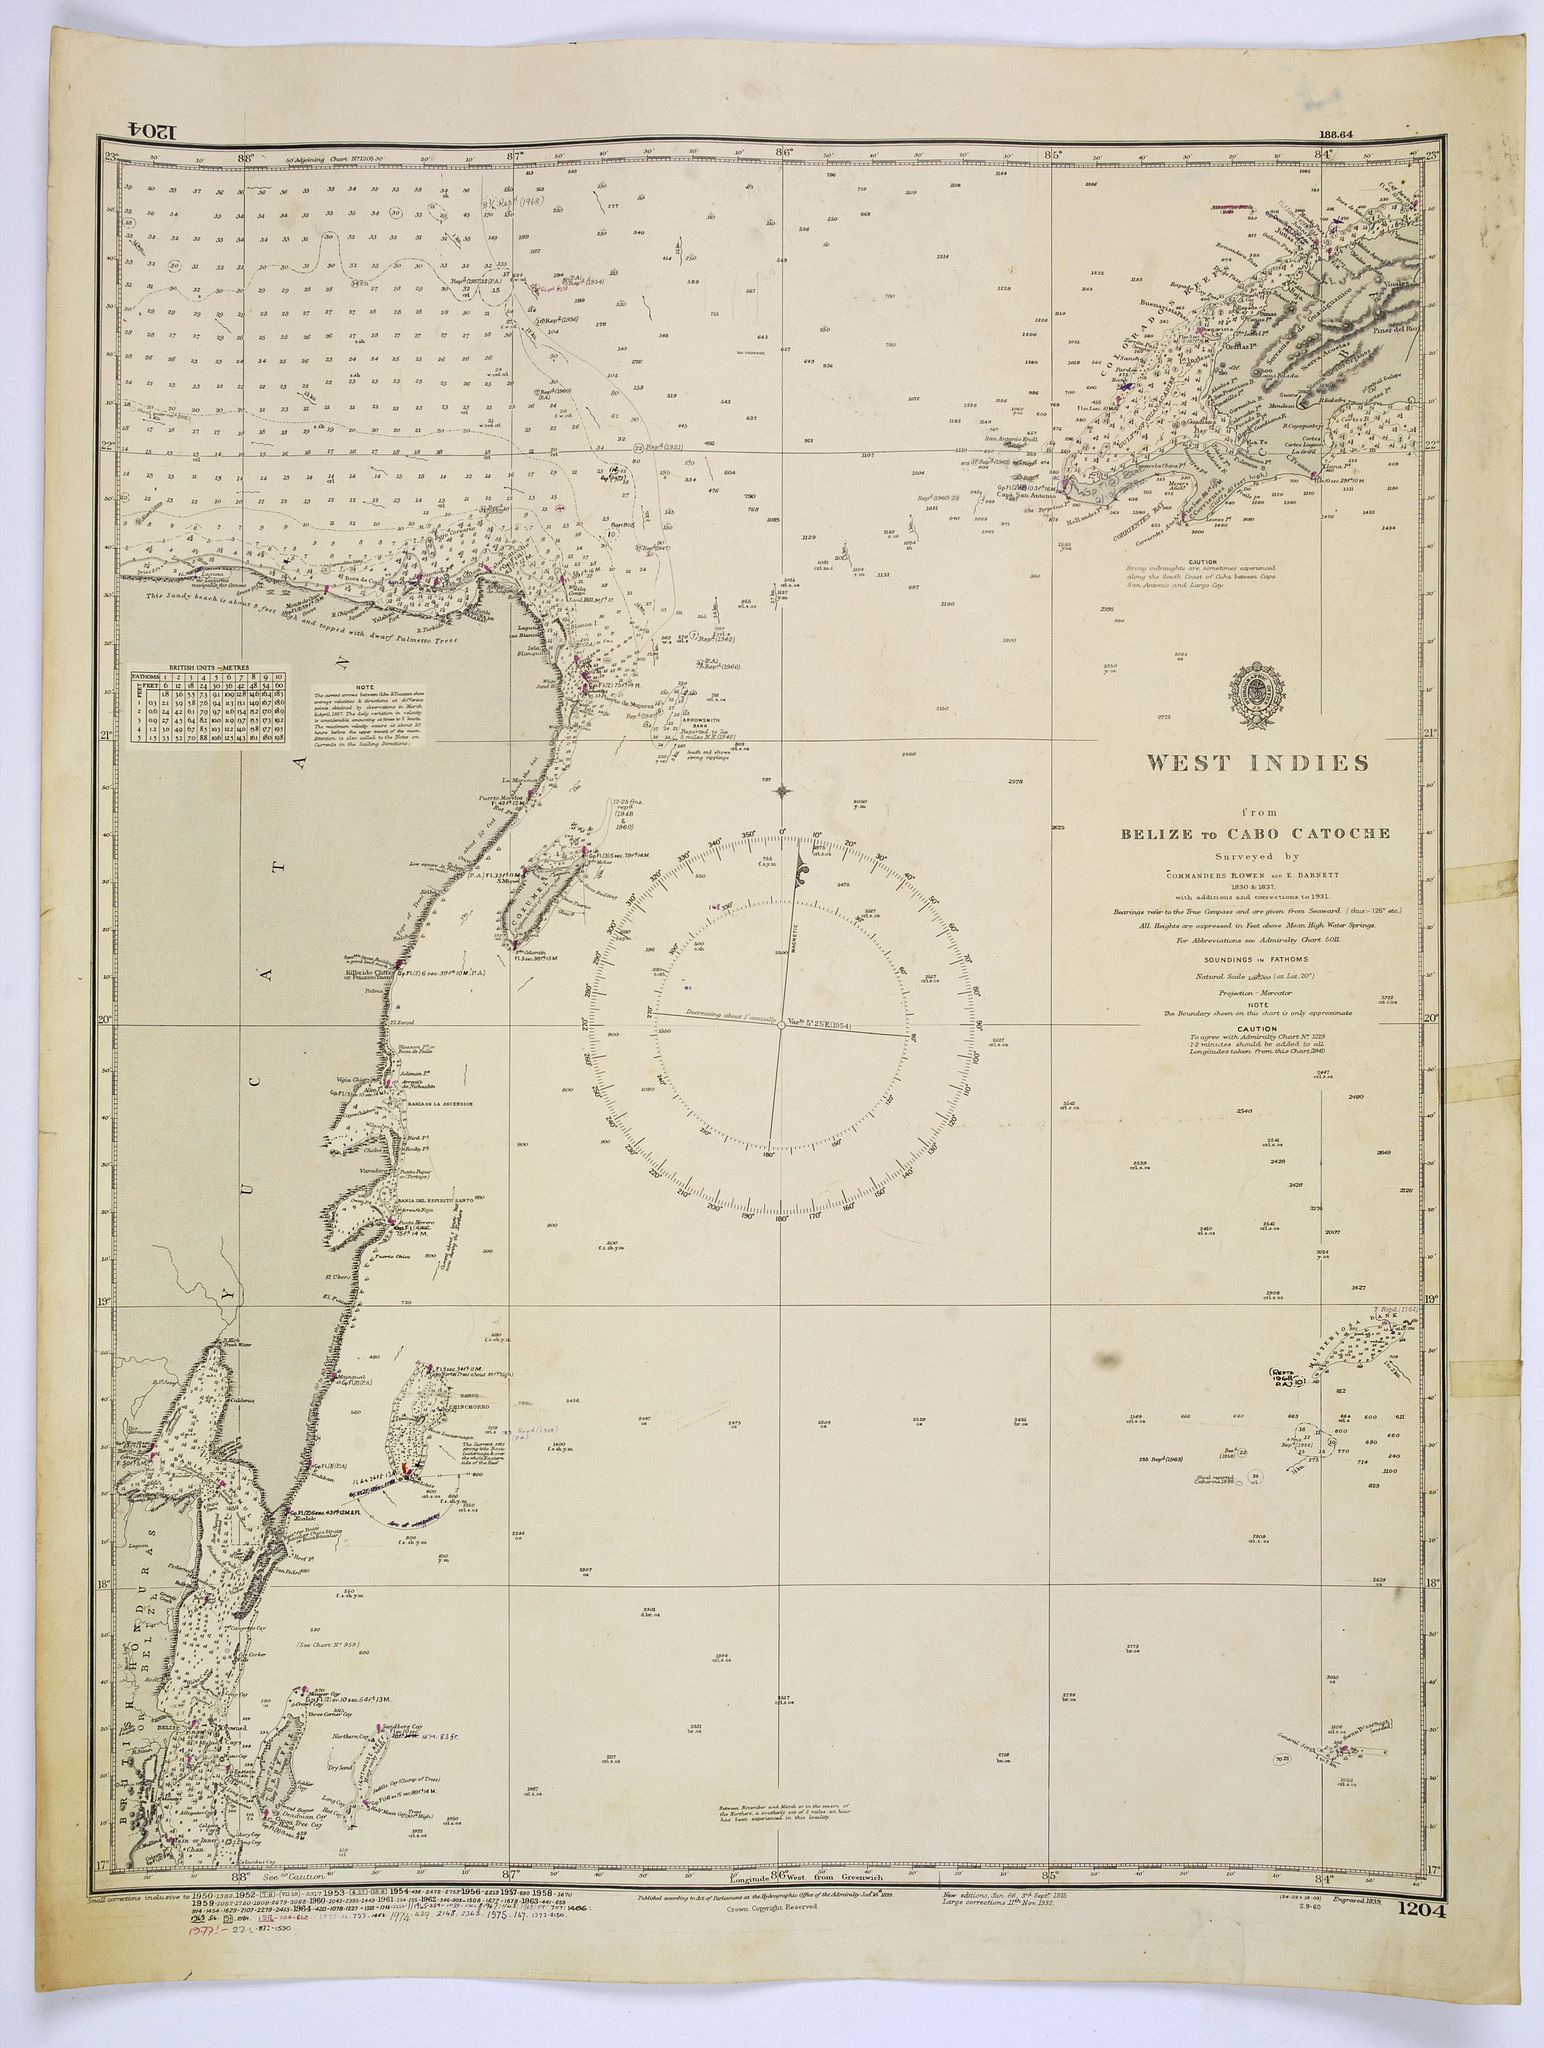 HYDROGRAPHIC OFFICE OF THE ADMIRALTY.,  West Indies [chart] from Belize to Cabo Catoche., antique map, old maps